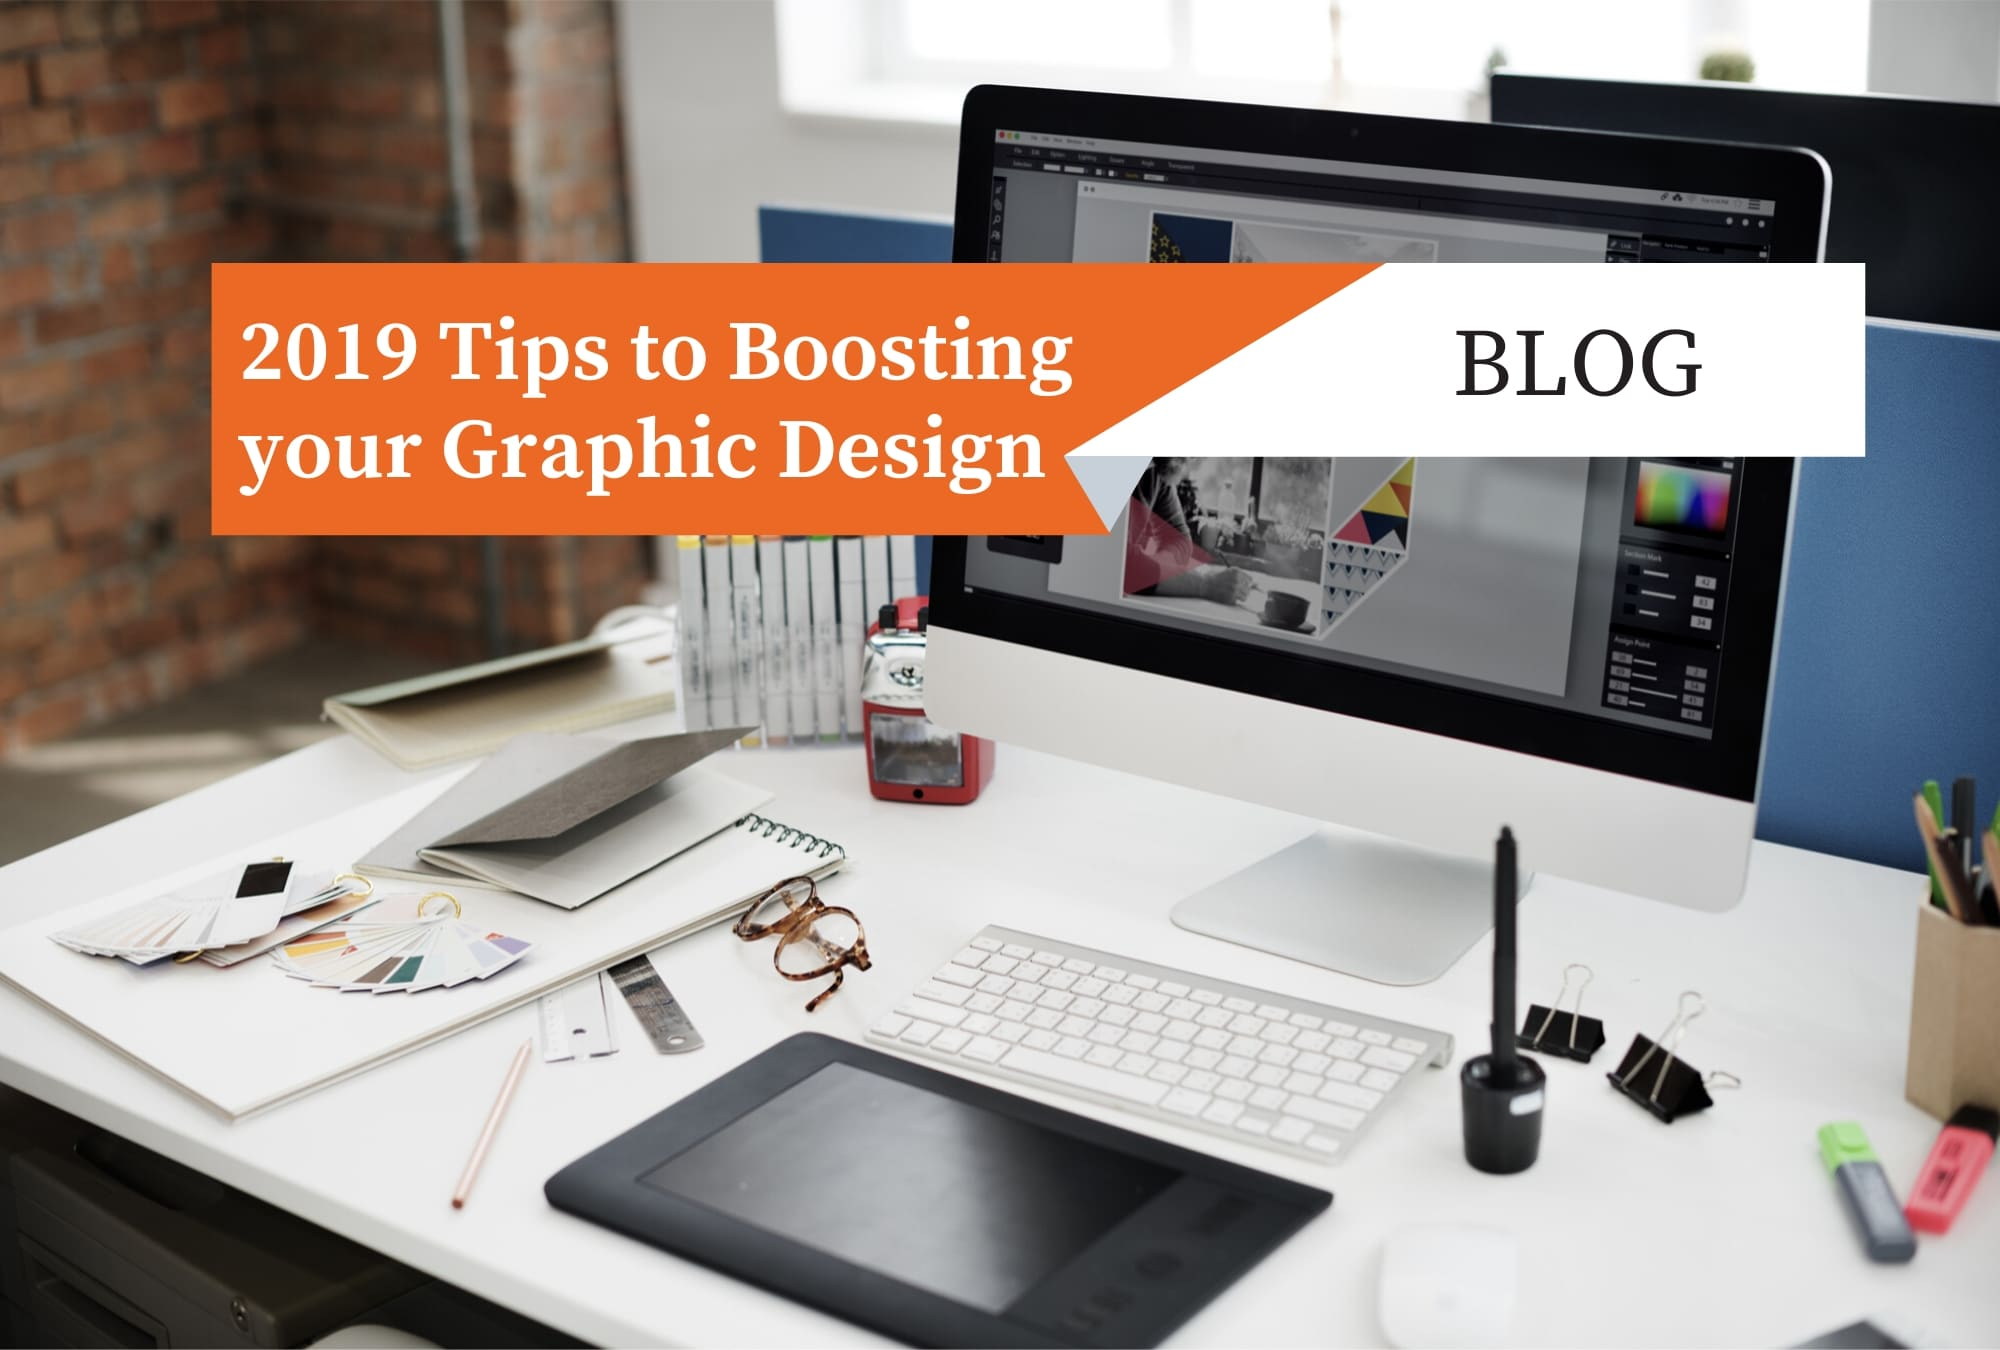 2019 Tips to Boosting your Graphic Design